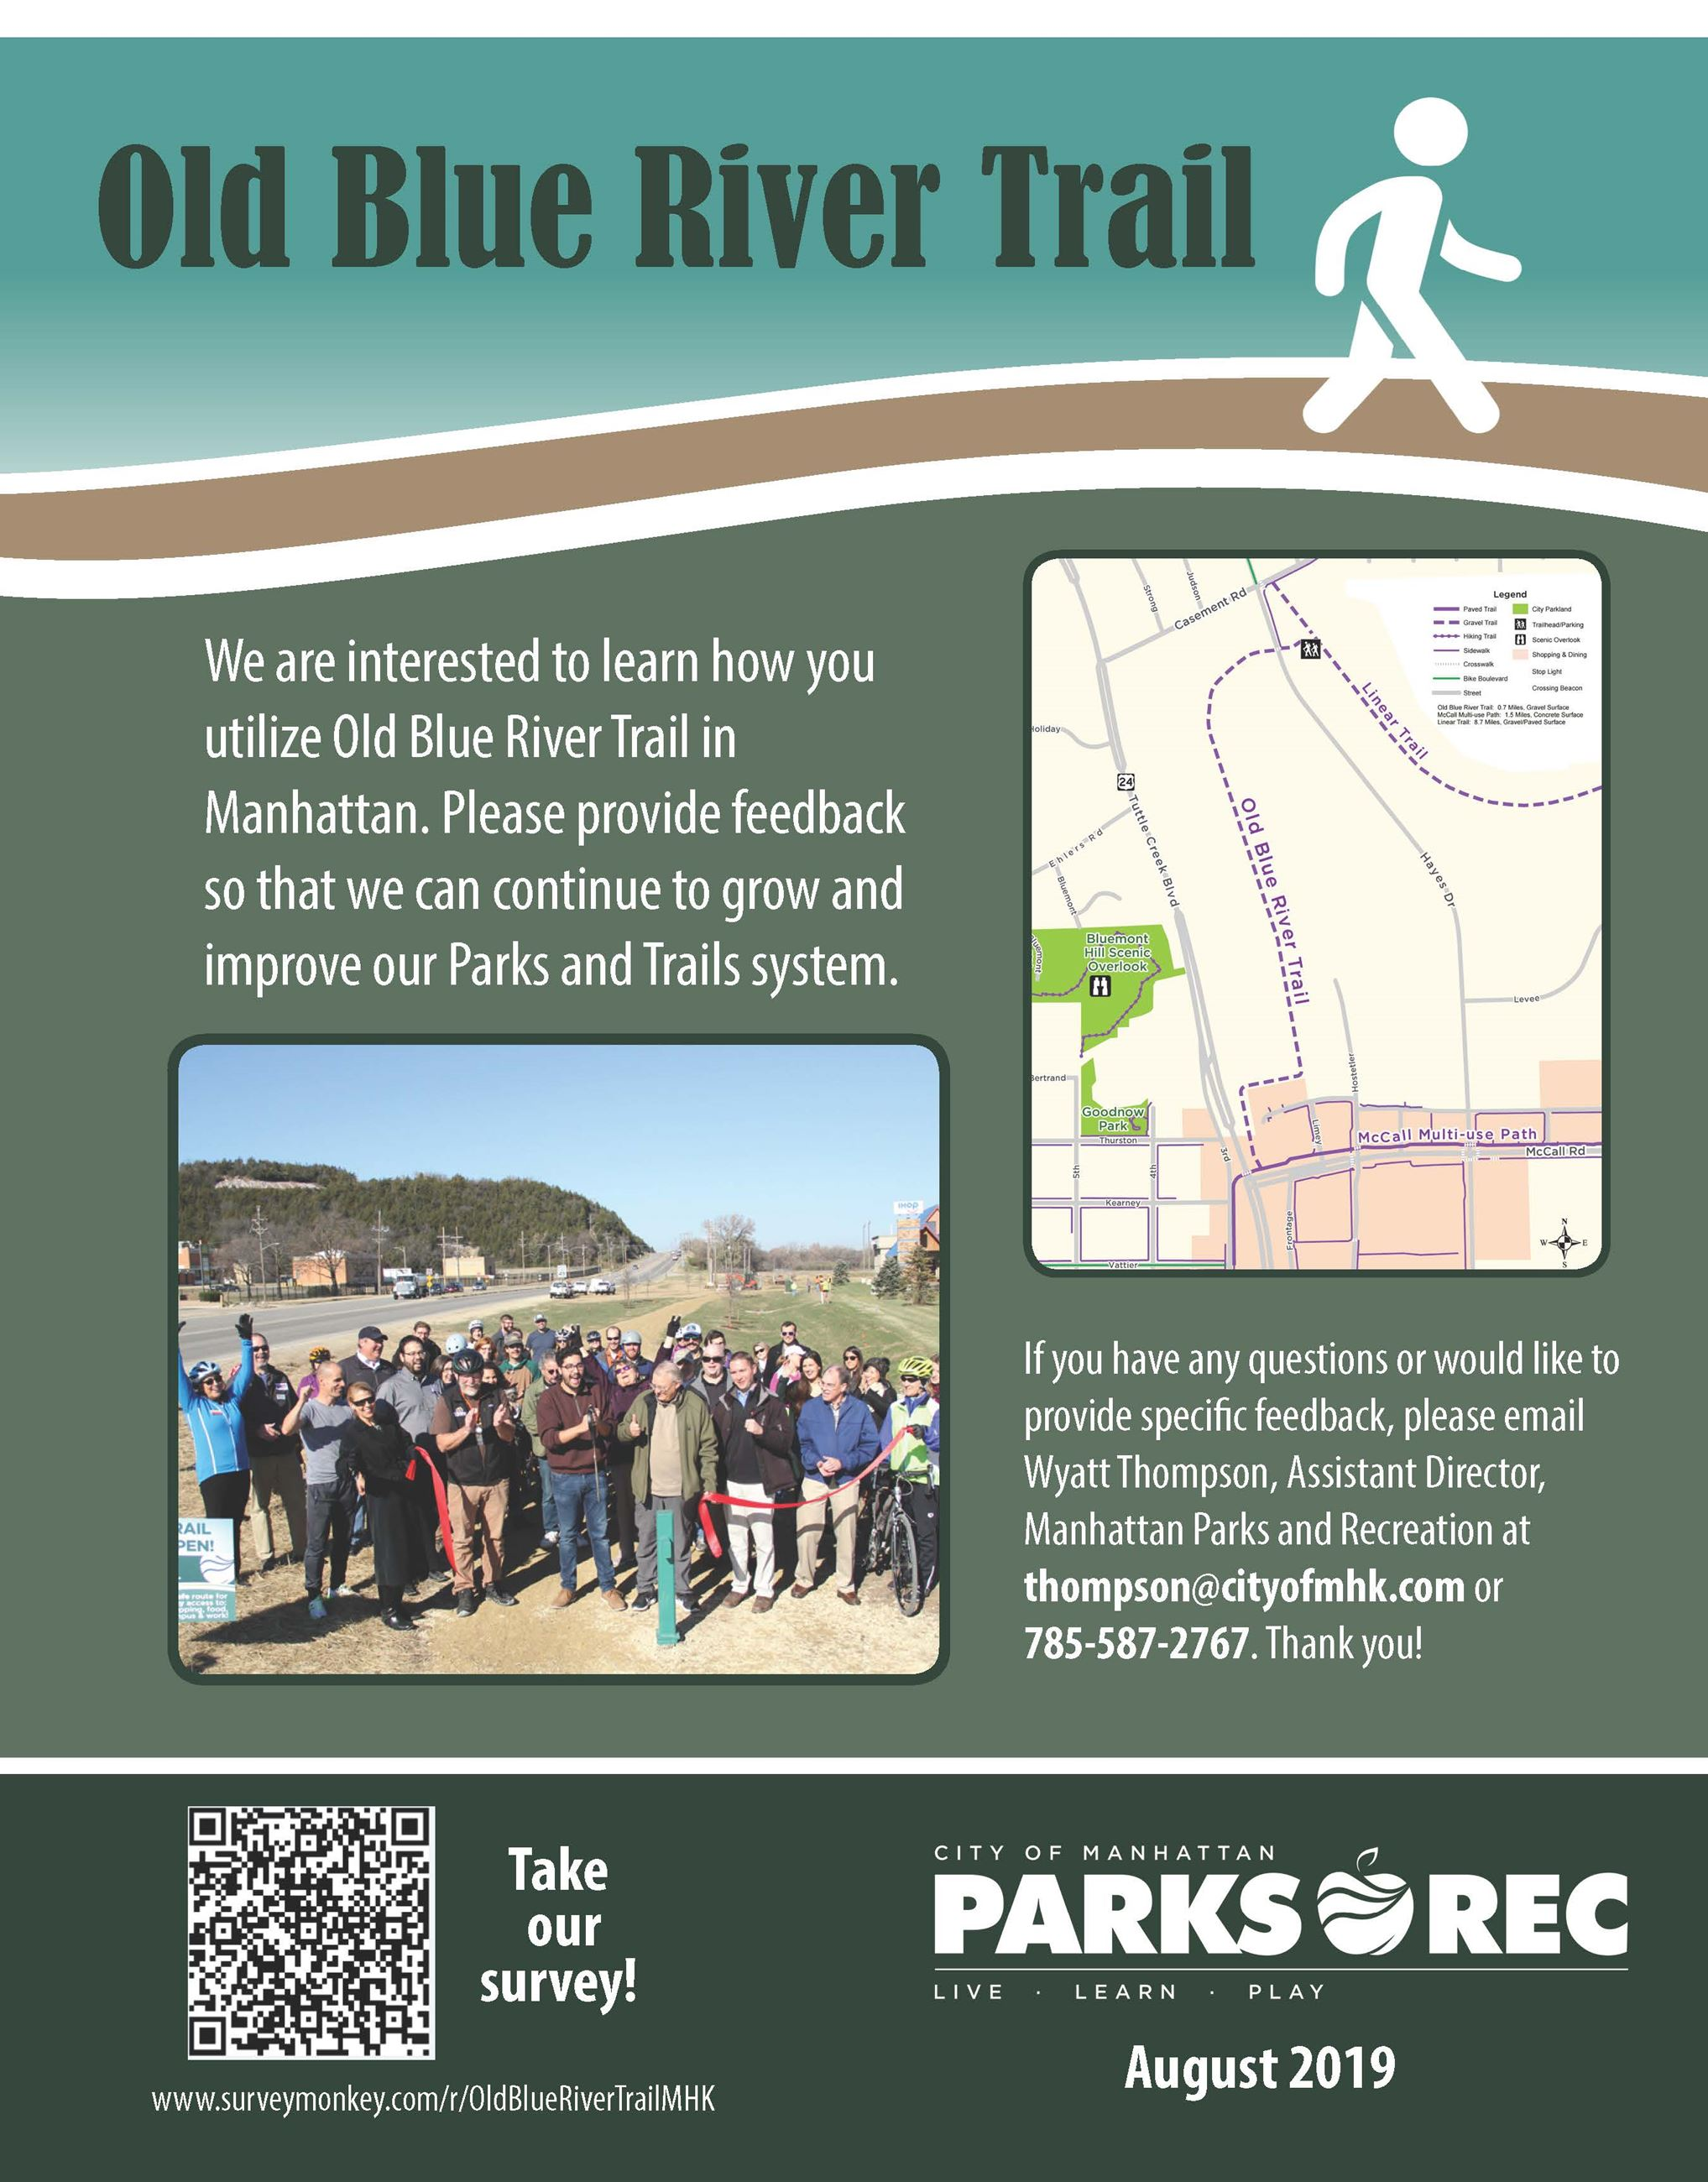 OBR_trail_flyer jpg Opens in new window